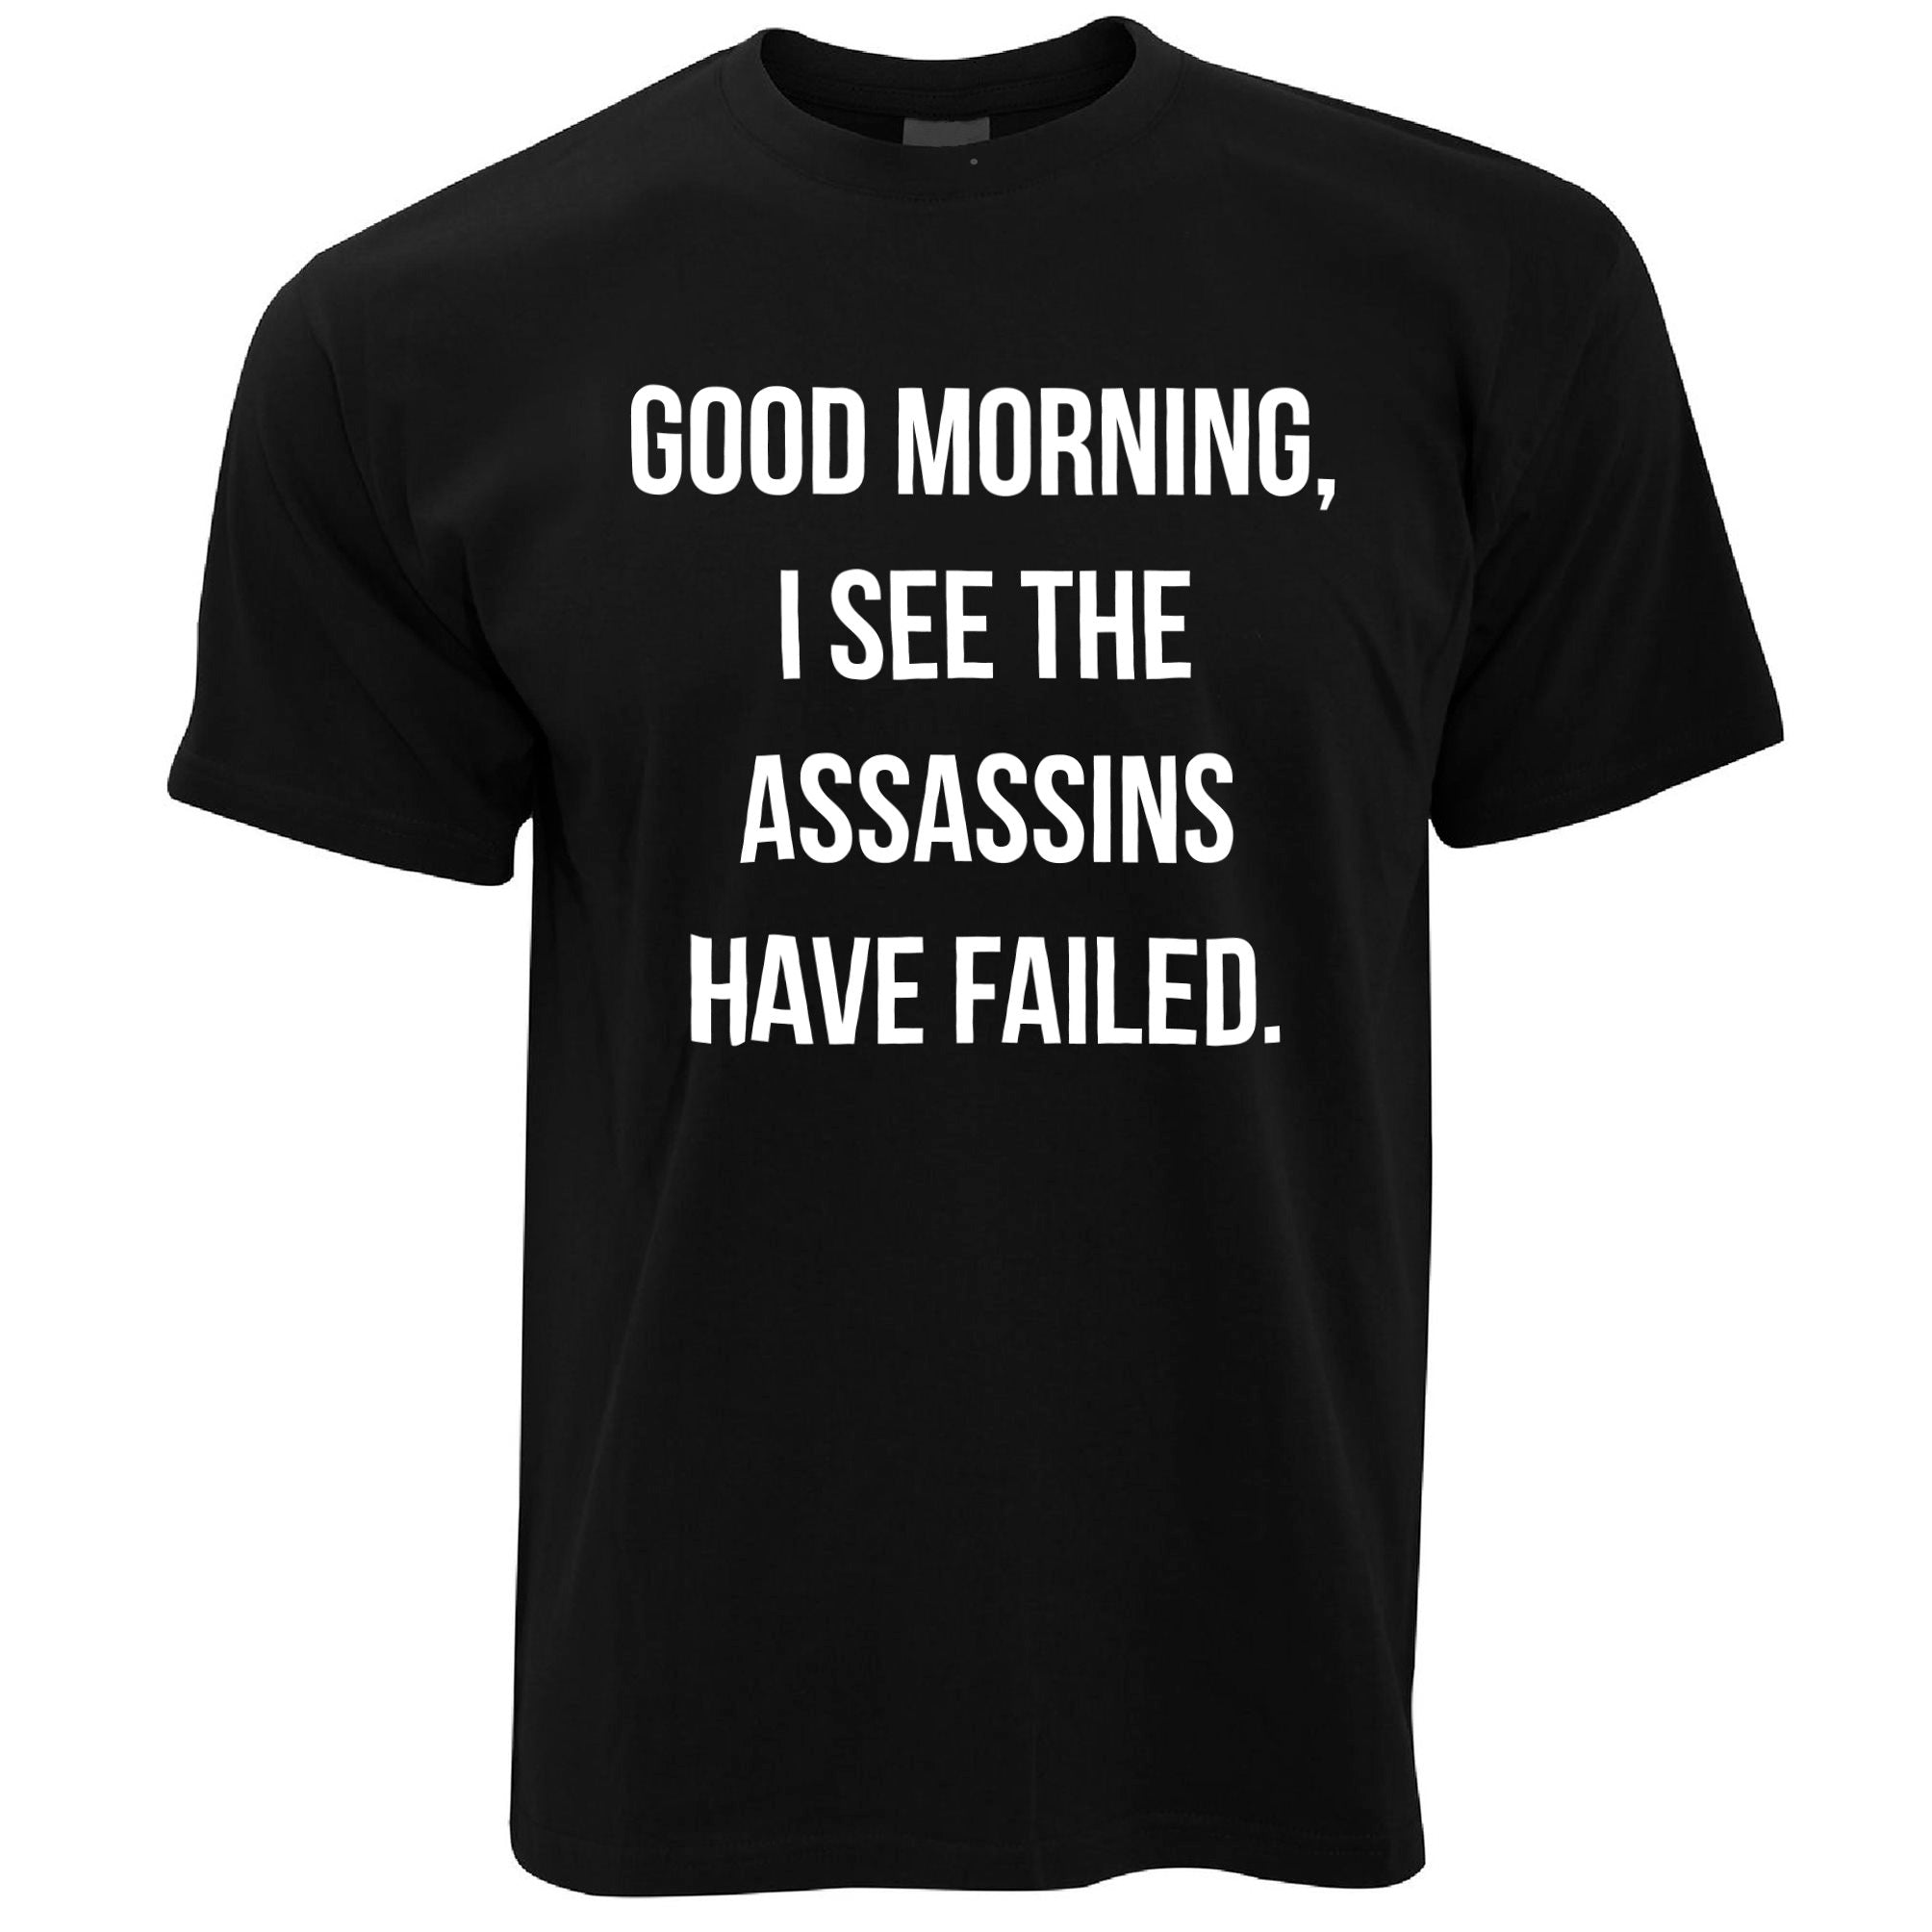 Mens Novelty T Shirt I See The Assassins Have Failed Joke Tee